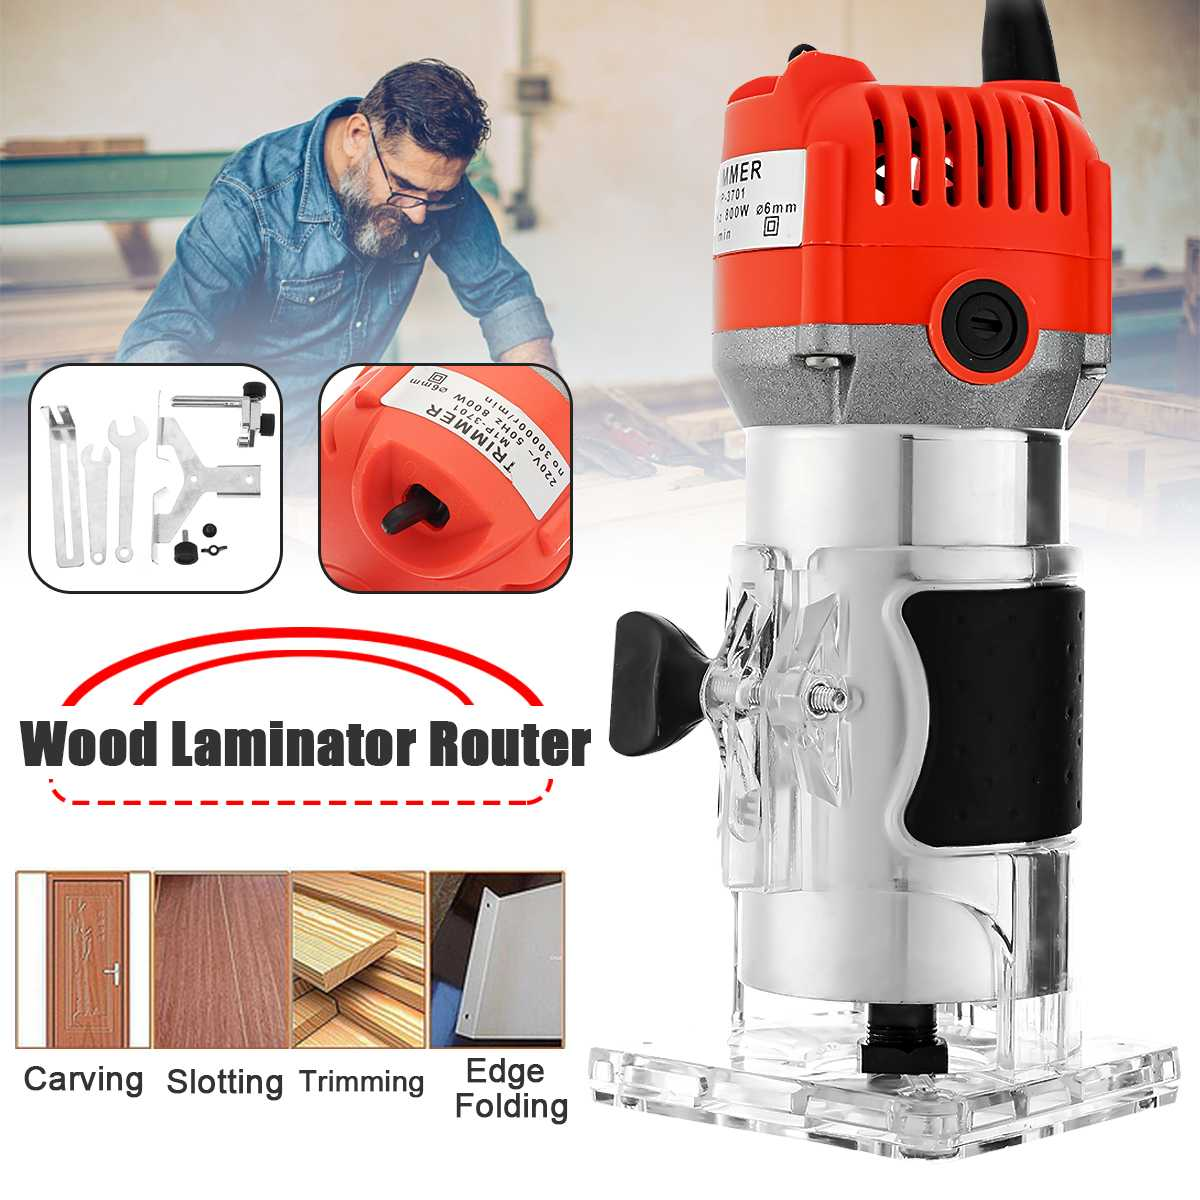 30000RPM 220V 800W 6.35mm 0.25 Inch Wood Laminate Router Electric Hand Trimmer Router Joiners DIY Woodworking Tool Machine30000RPM 220V 800W 6.35mm 0.25 Inch Wood Laminate Router Electric Hand Trimmer Router Joiners DIY Woodworking Tool Machine